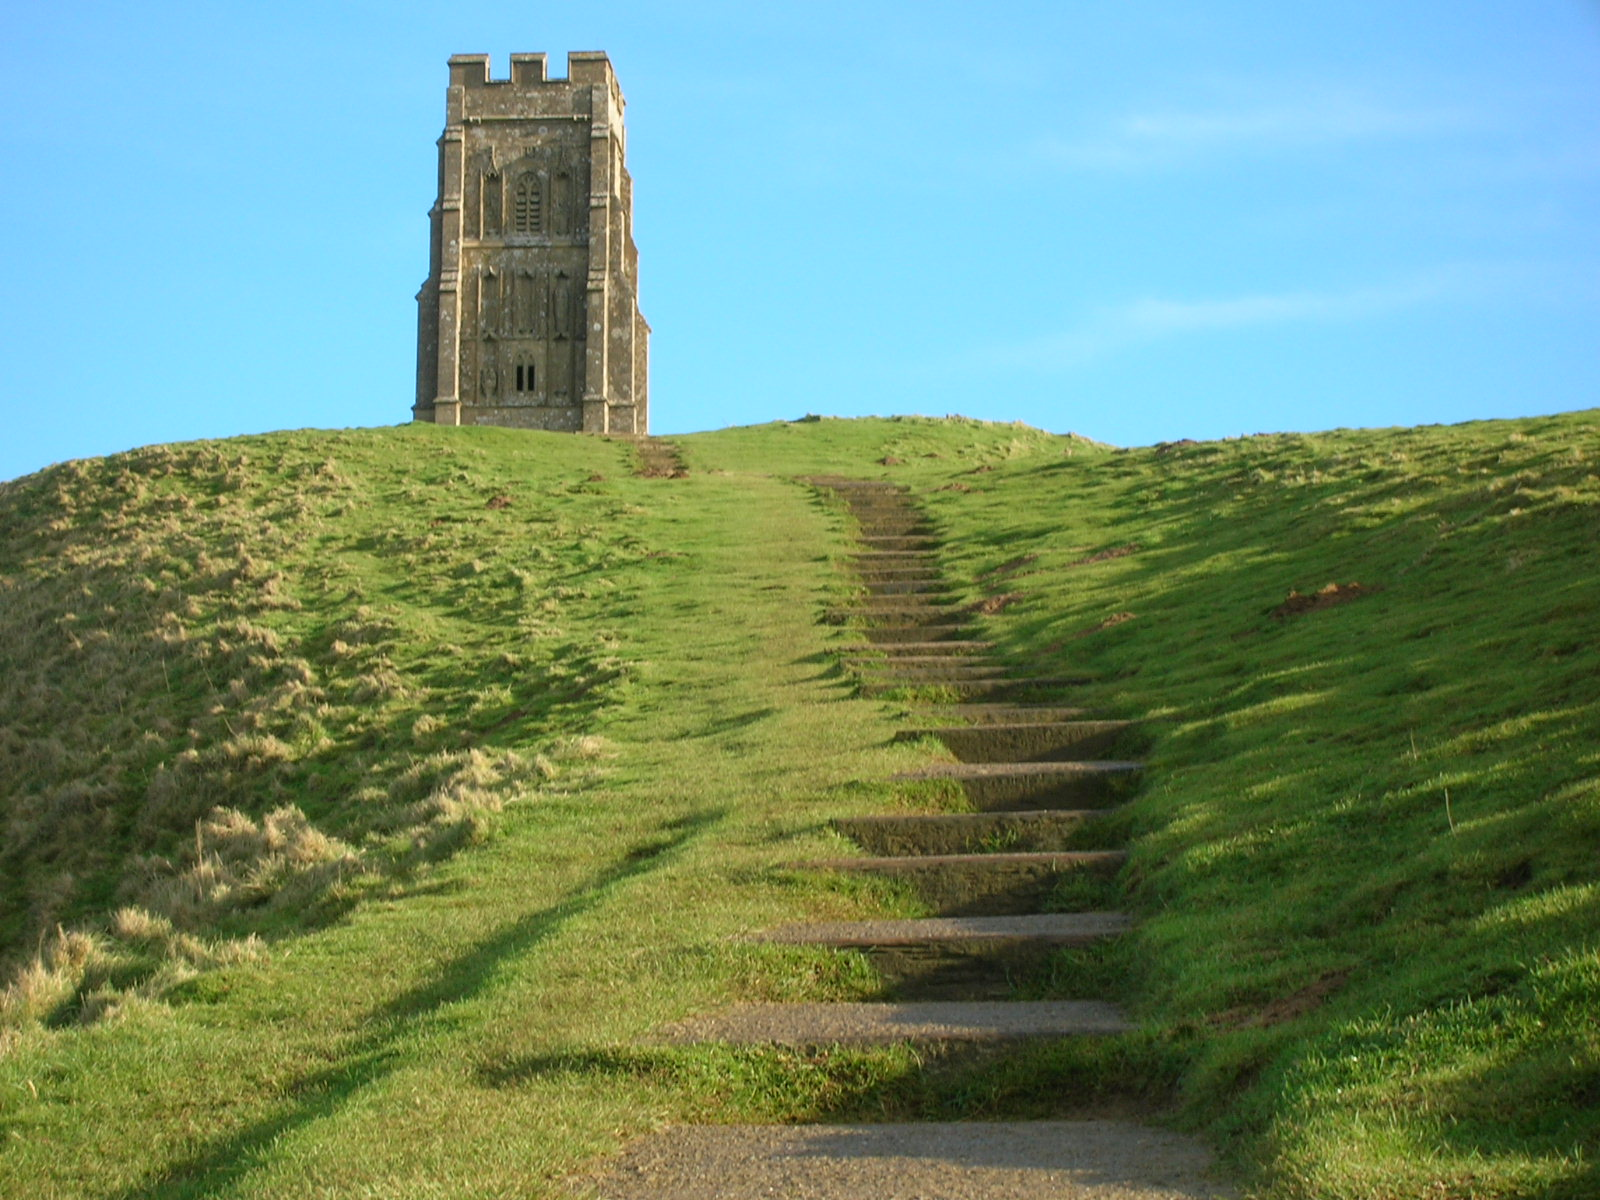 Summit_of_Glastonbury_Tor.jpg